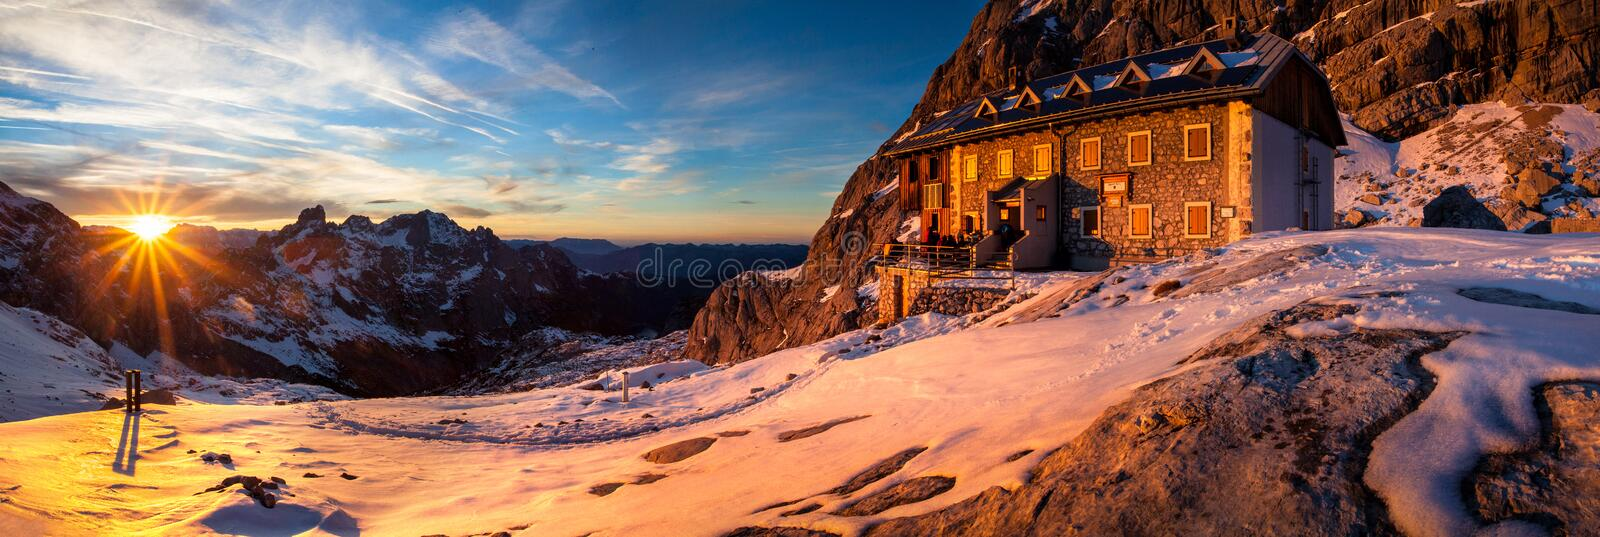 Winter Mountain Hut Stock Photos